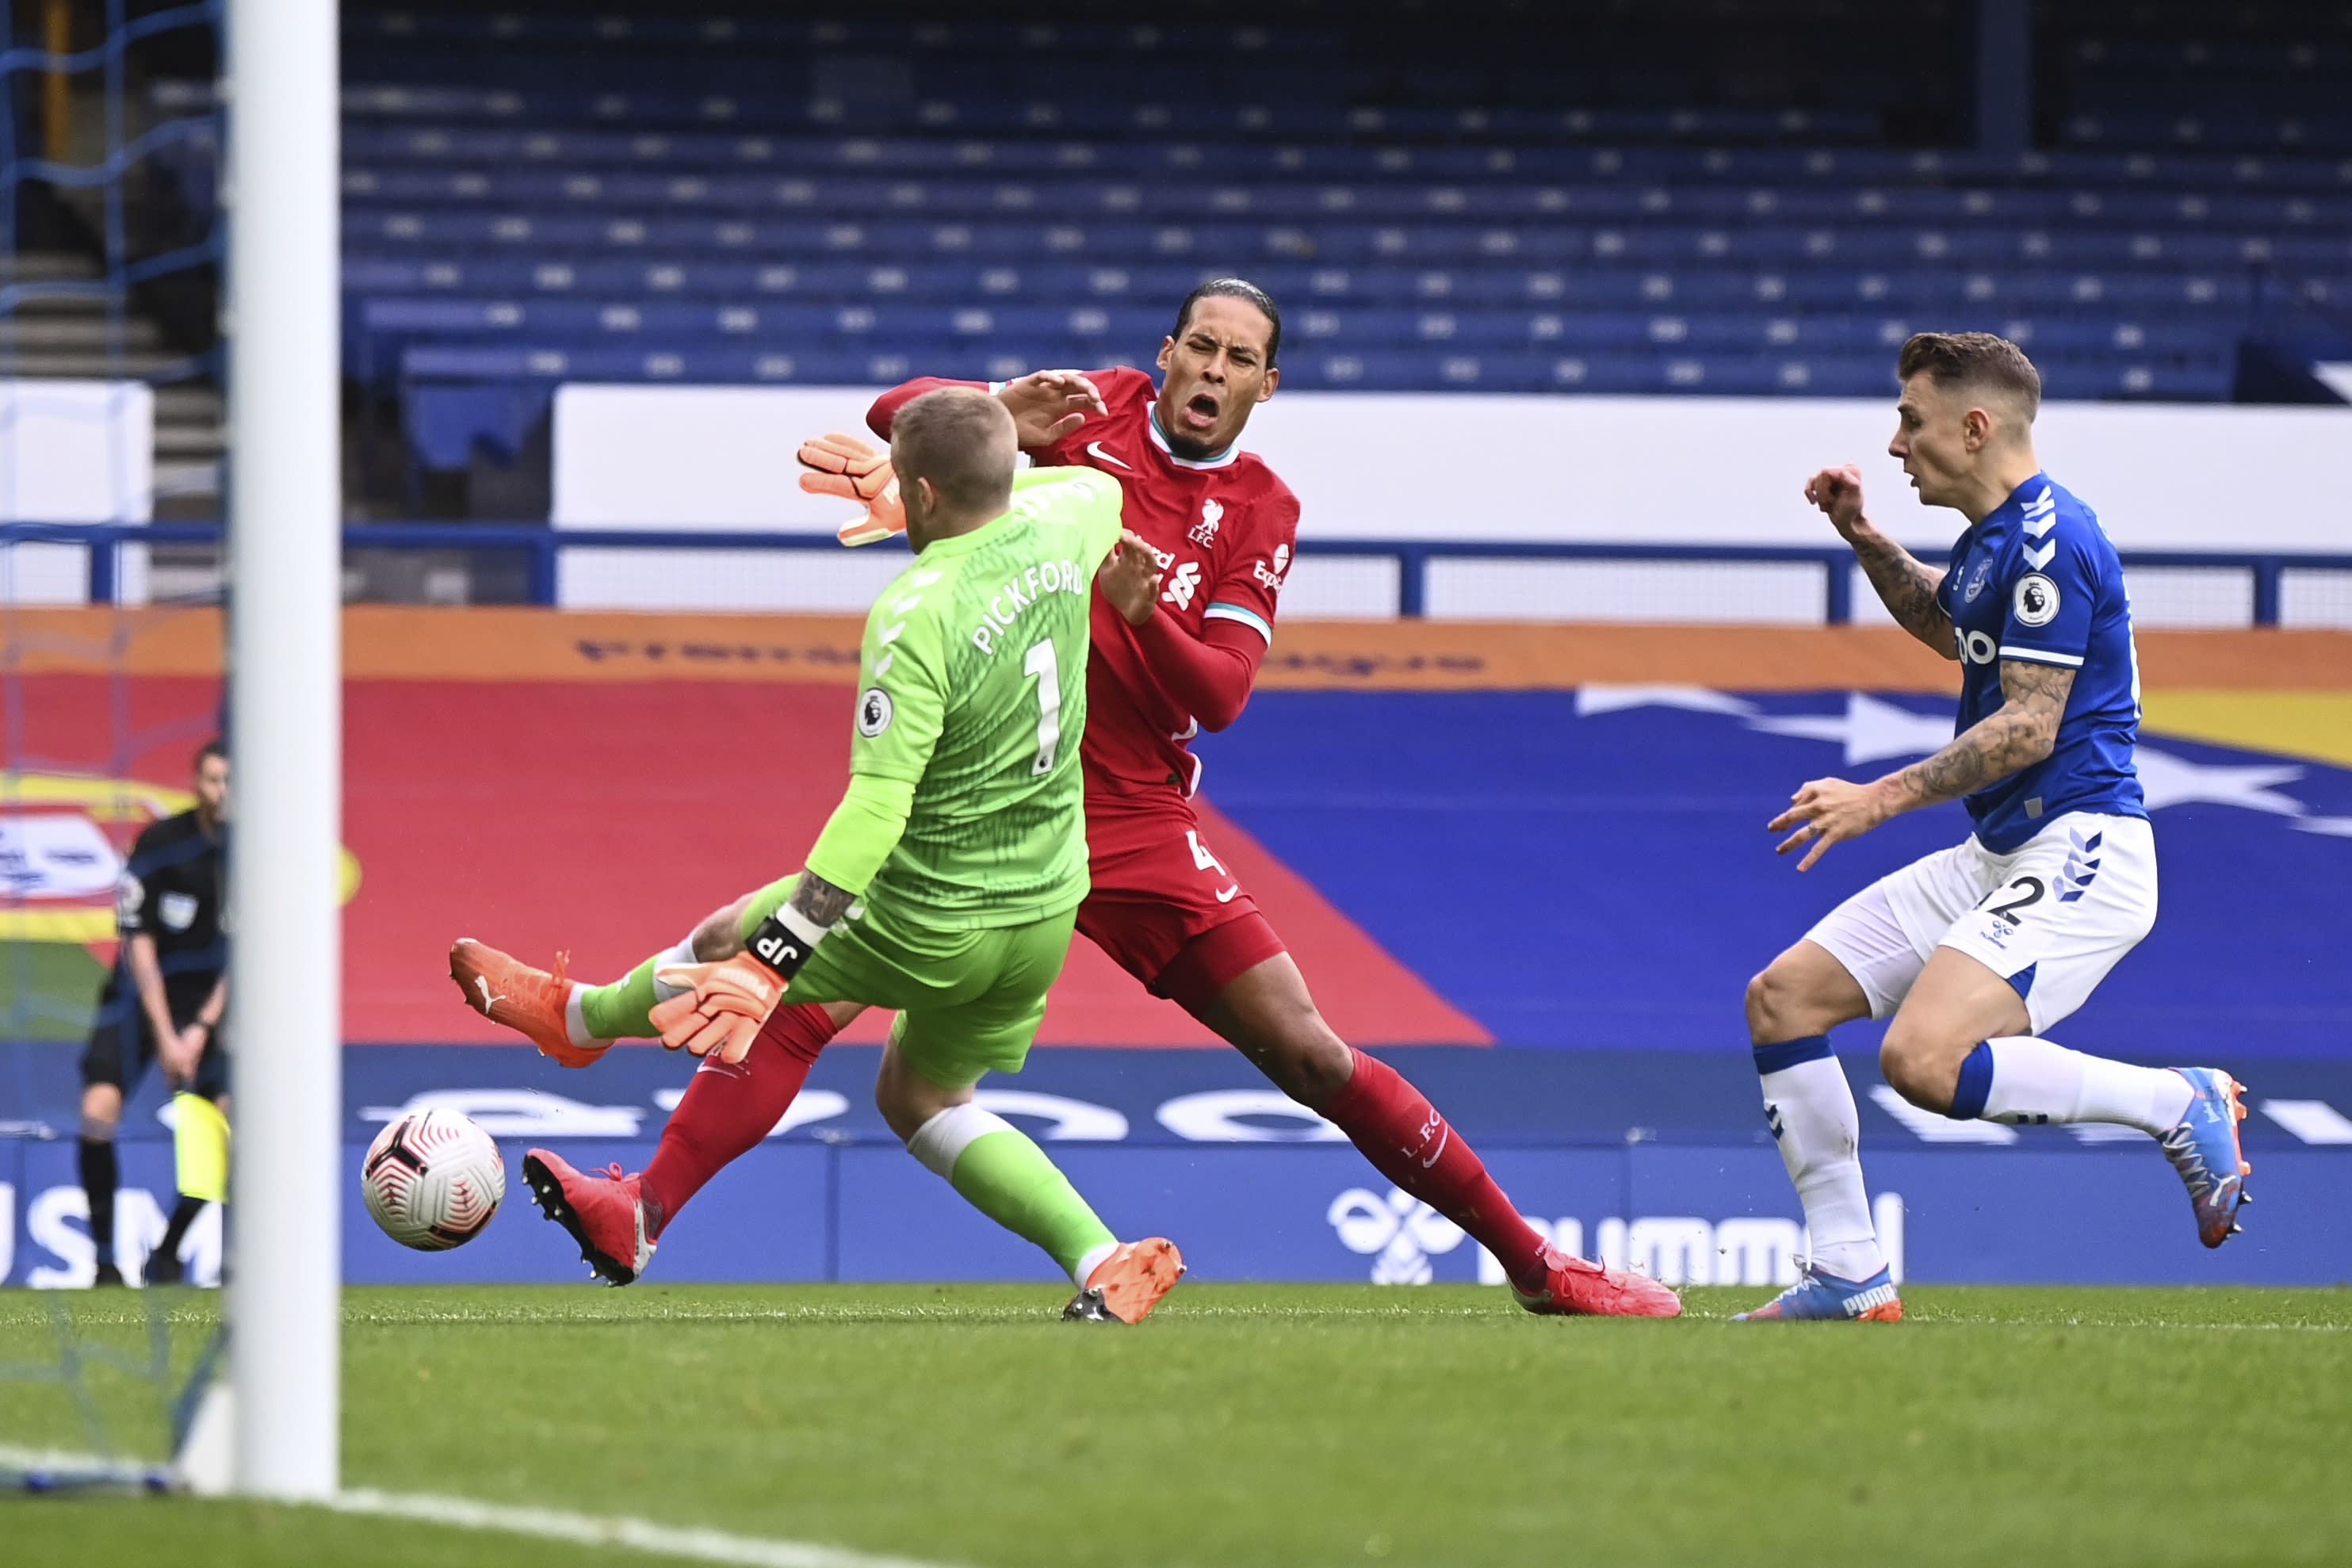 Liverpool's Virgil van Dijk, centre, is tackled and injured by Everton's goalkeeper Jordan Pickford, left, causing him to leave the match injured during the English Premier League soccer match between Everton and Liverpool at Goodison Park stadium, in Liverpool, England, Saturday, Oct. 17, 2020. (Laurence Griffiths/Pool via AP)